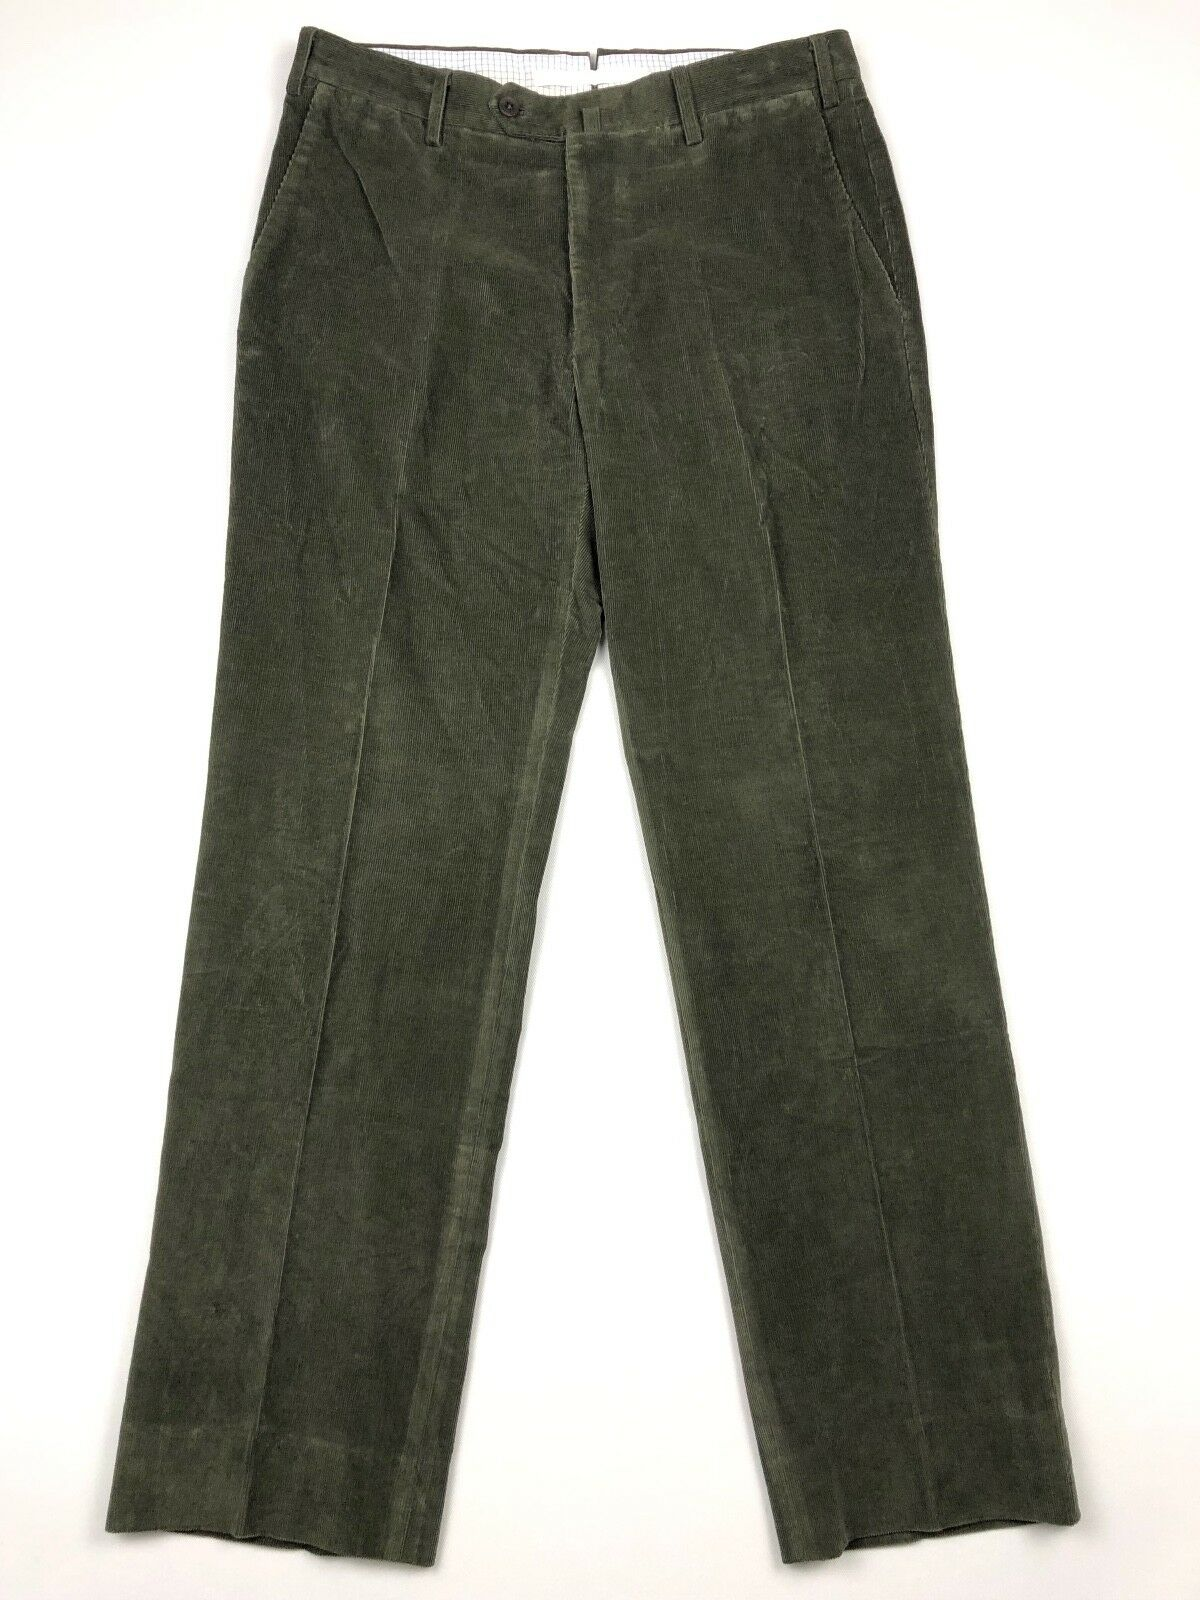 Luigi Borrelli Napoli Men's Corduroy Pants Flat Front Green • Size 32x31   50 IT